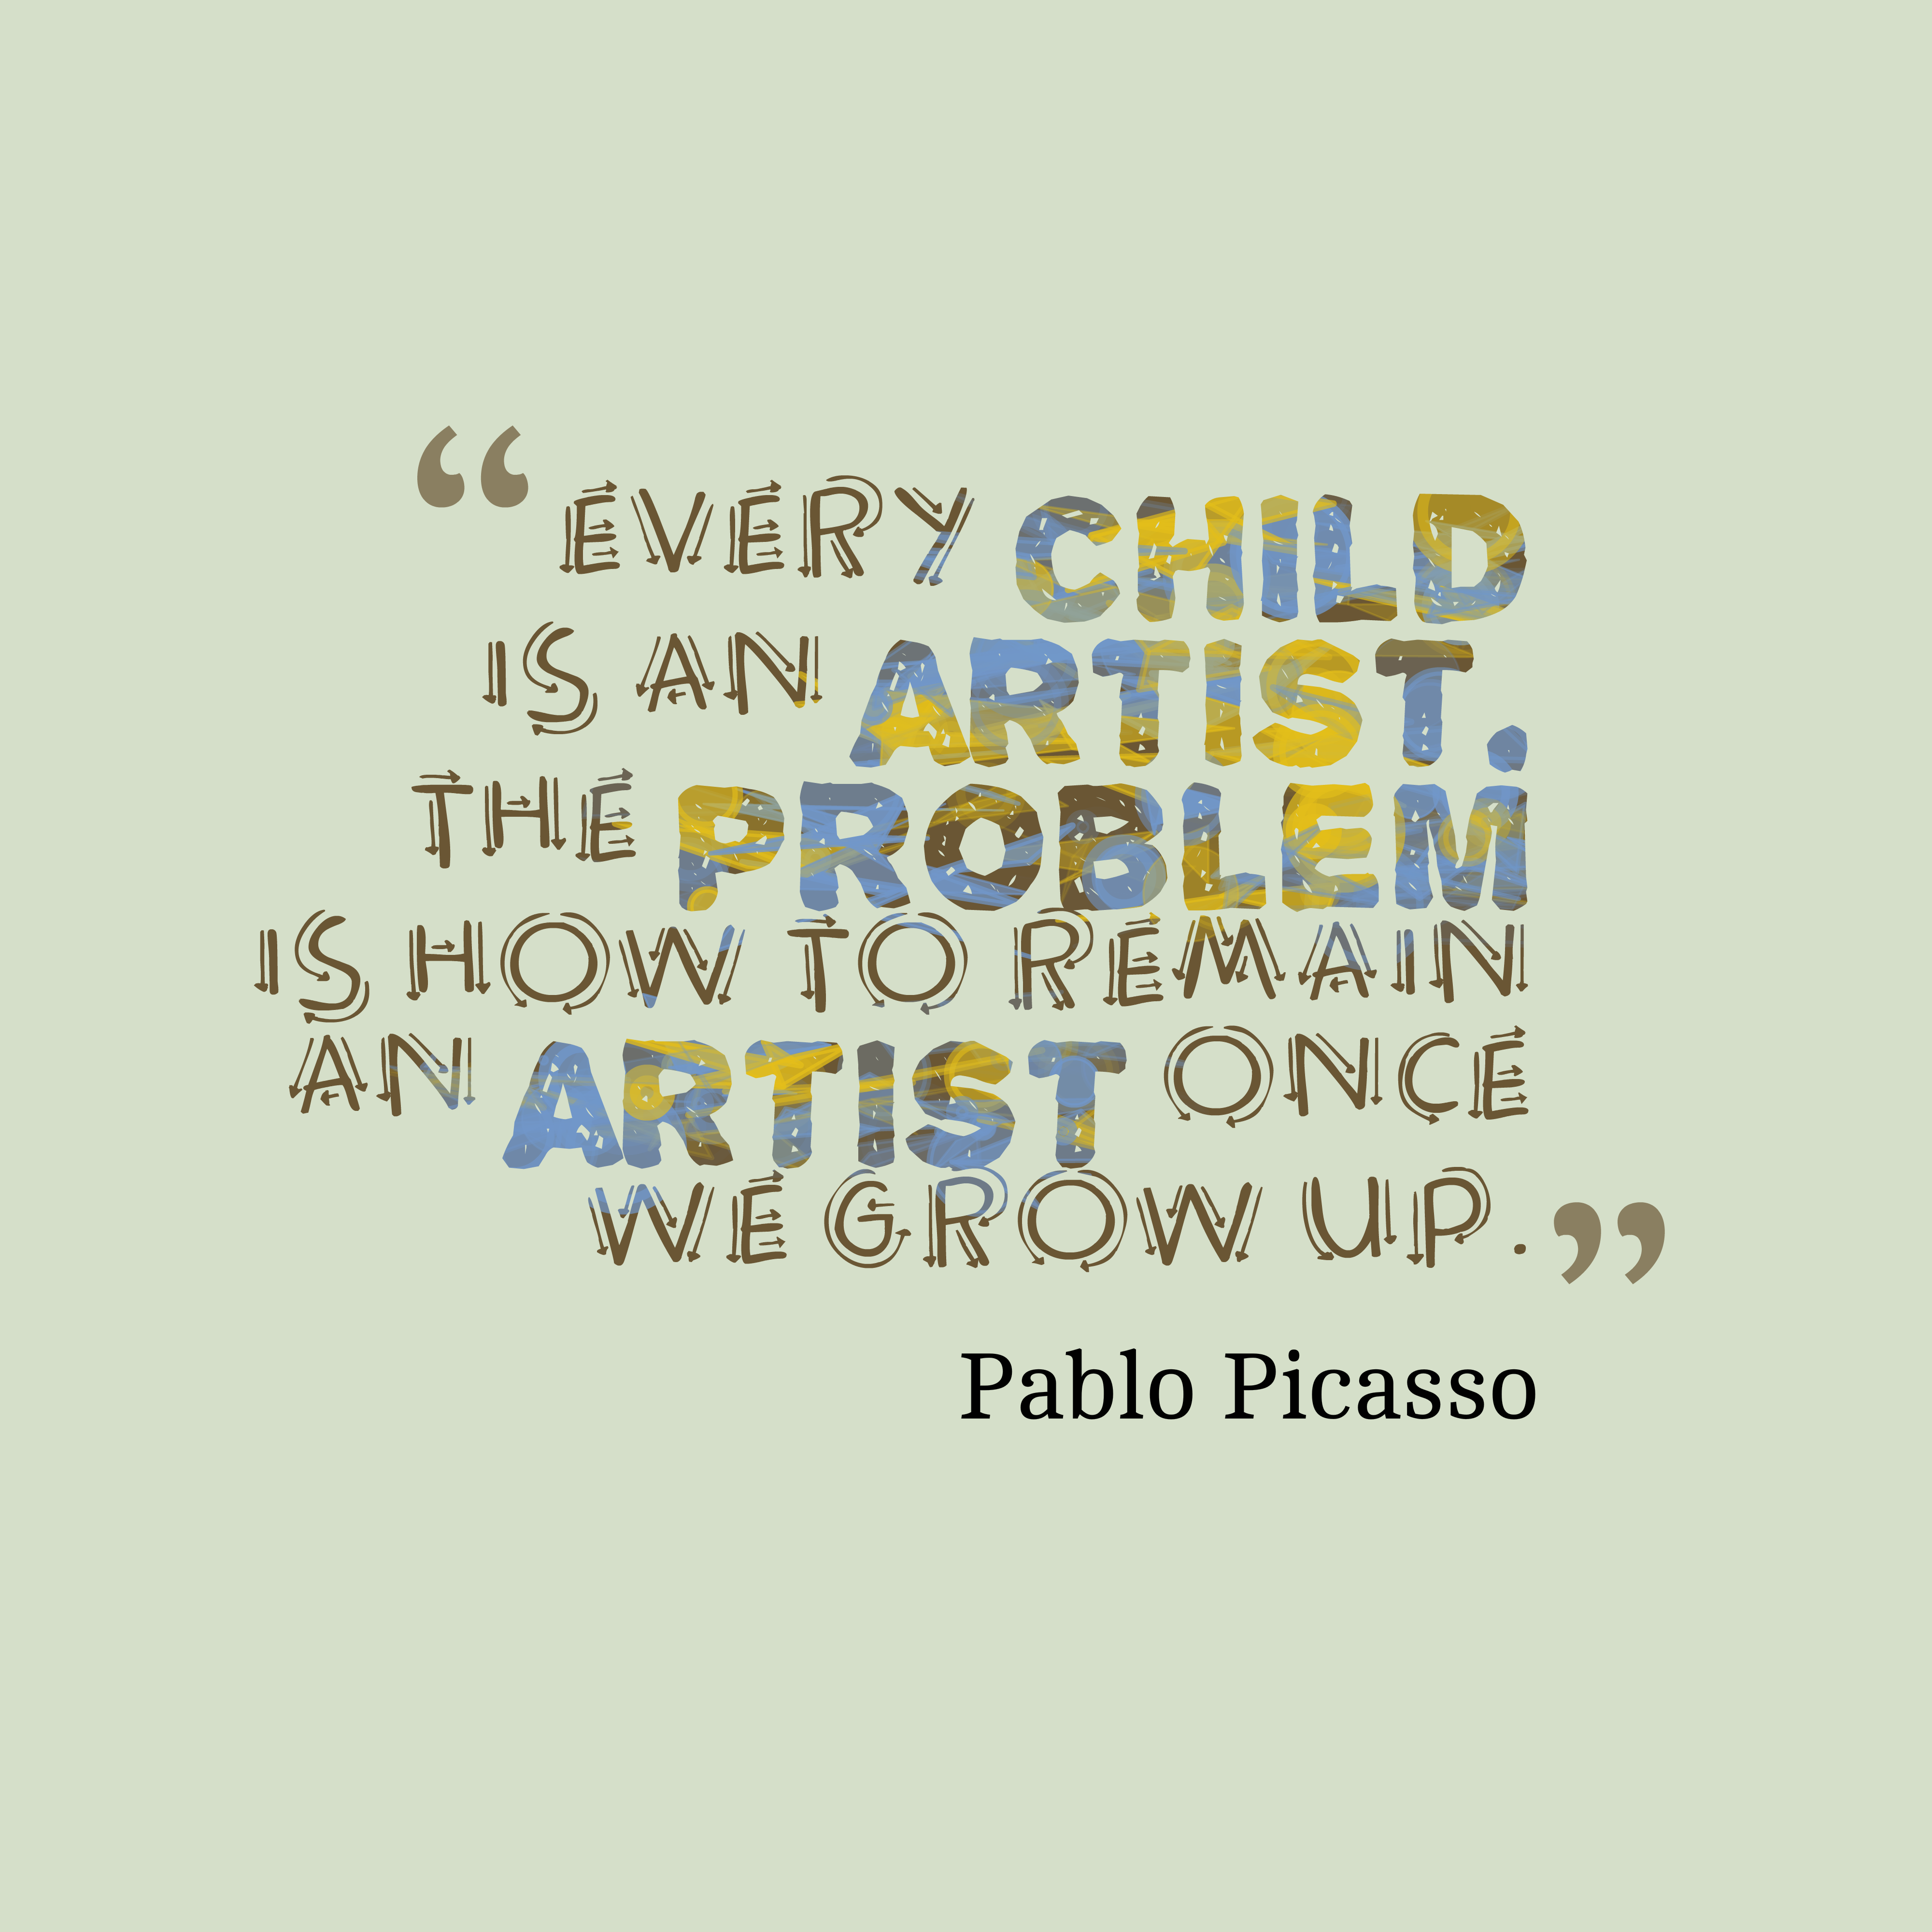 Pablo Picasso Quote About Children